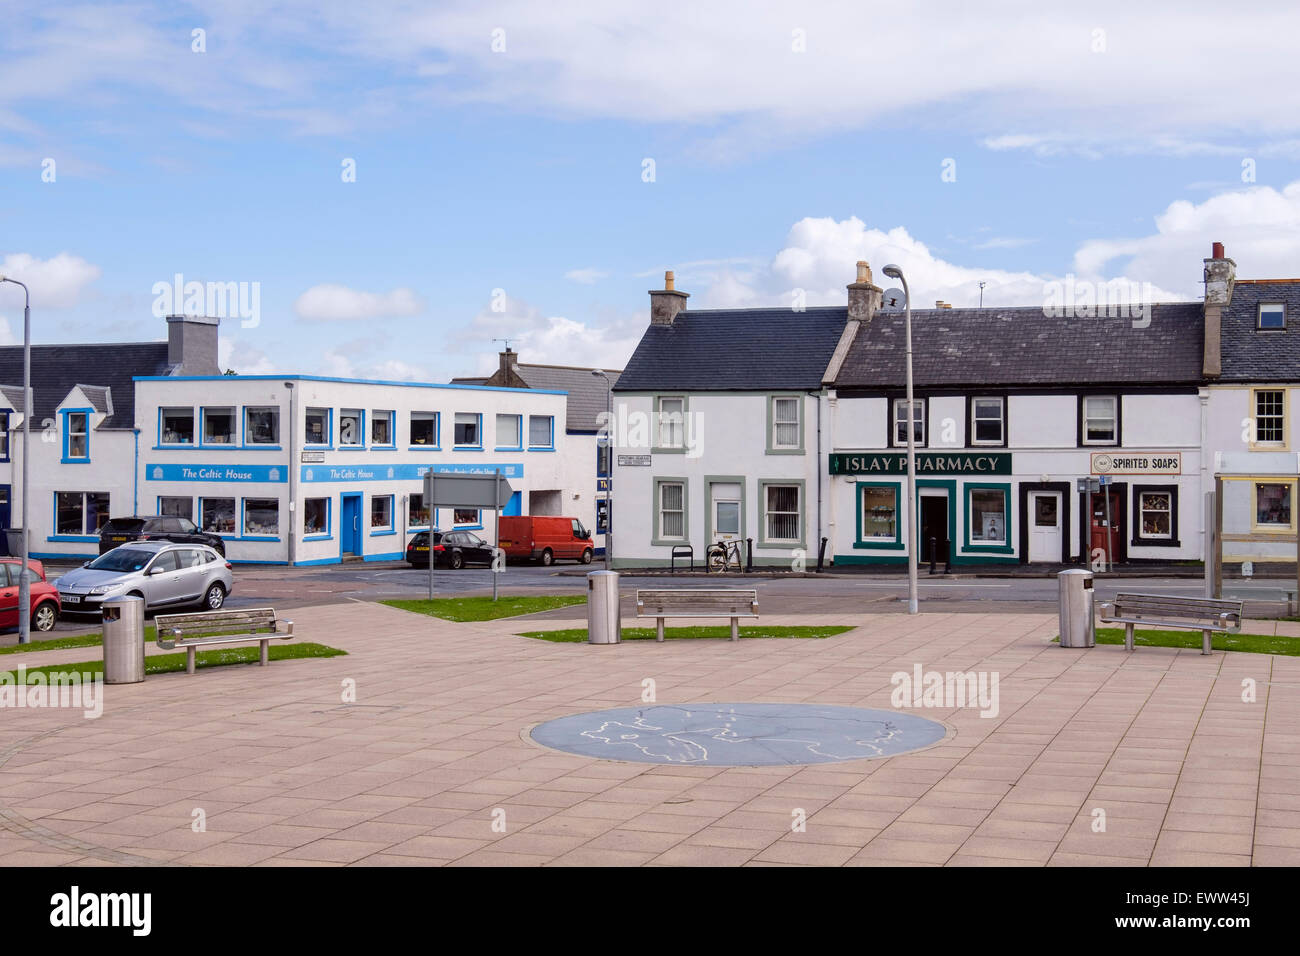 Paved square with island map in town centre. Main Street, Bowmore, Isle of Islay, Argyll and Bute, Inner Hebrides, - Stock Image